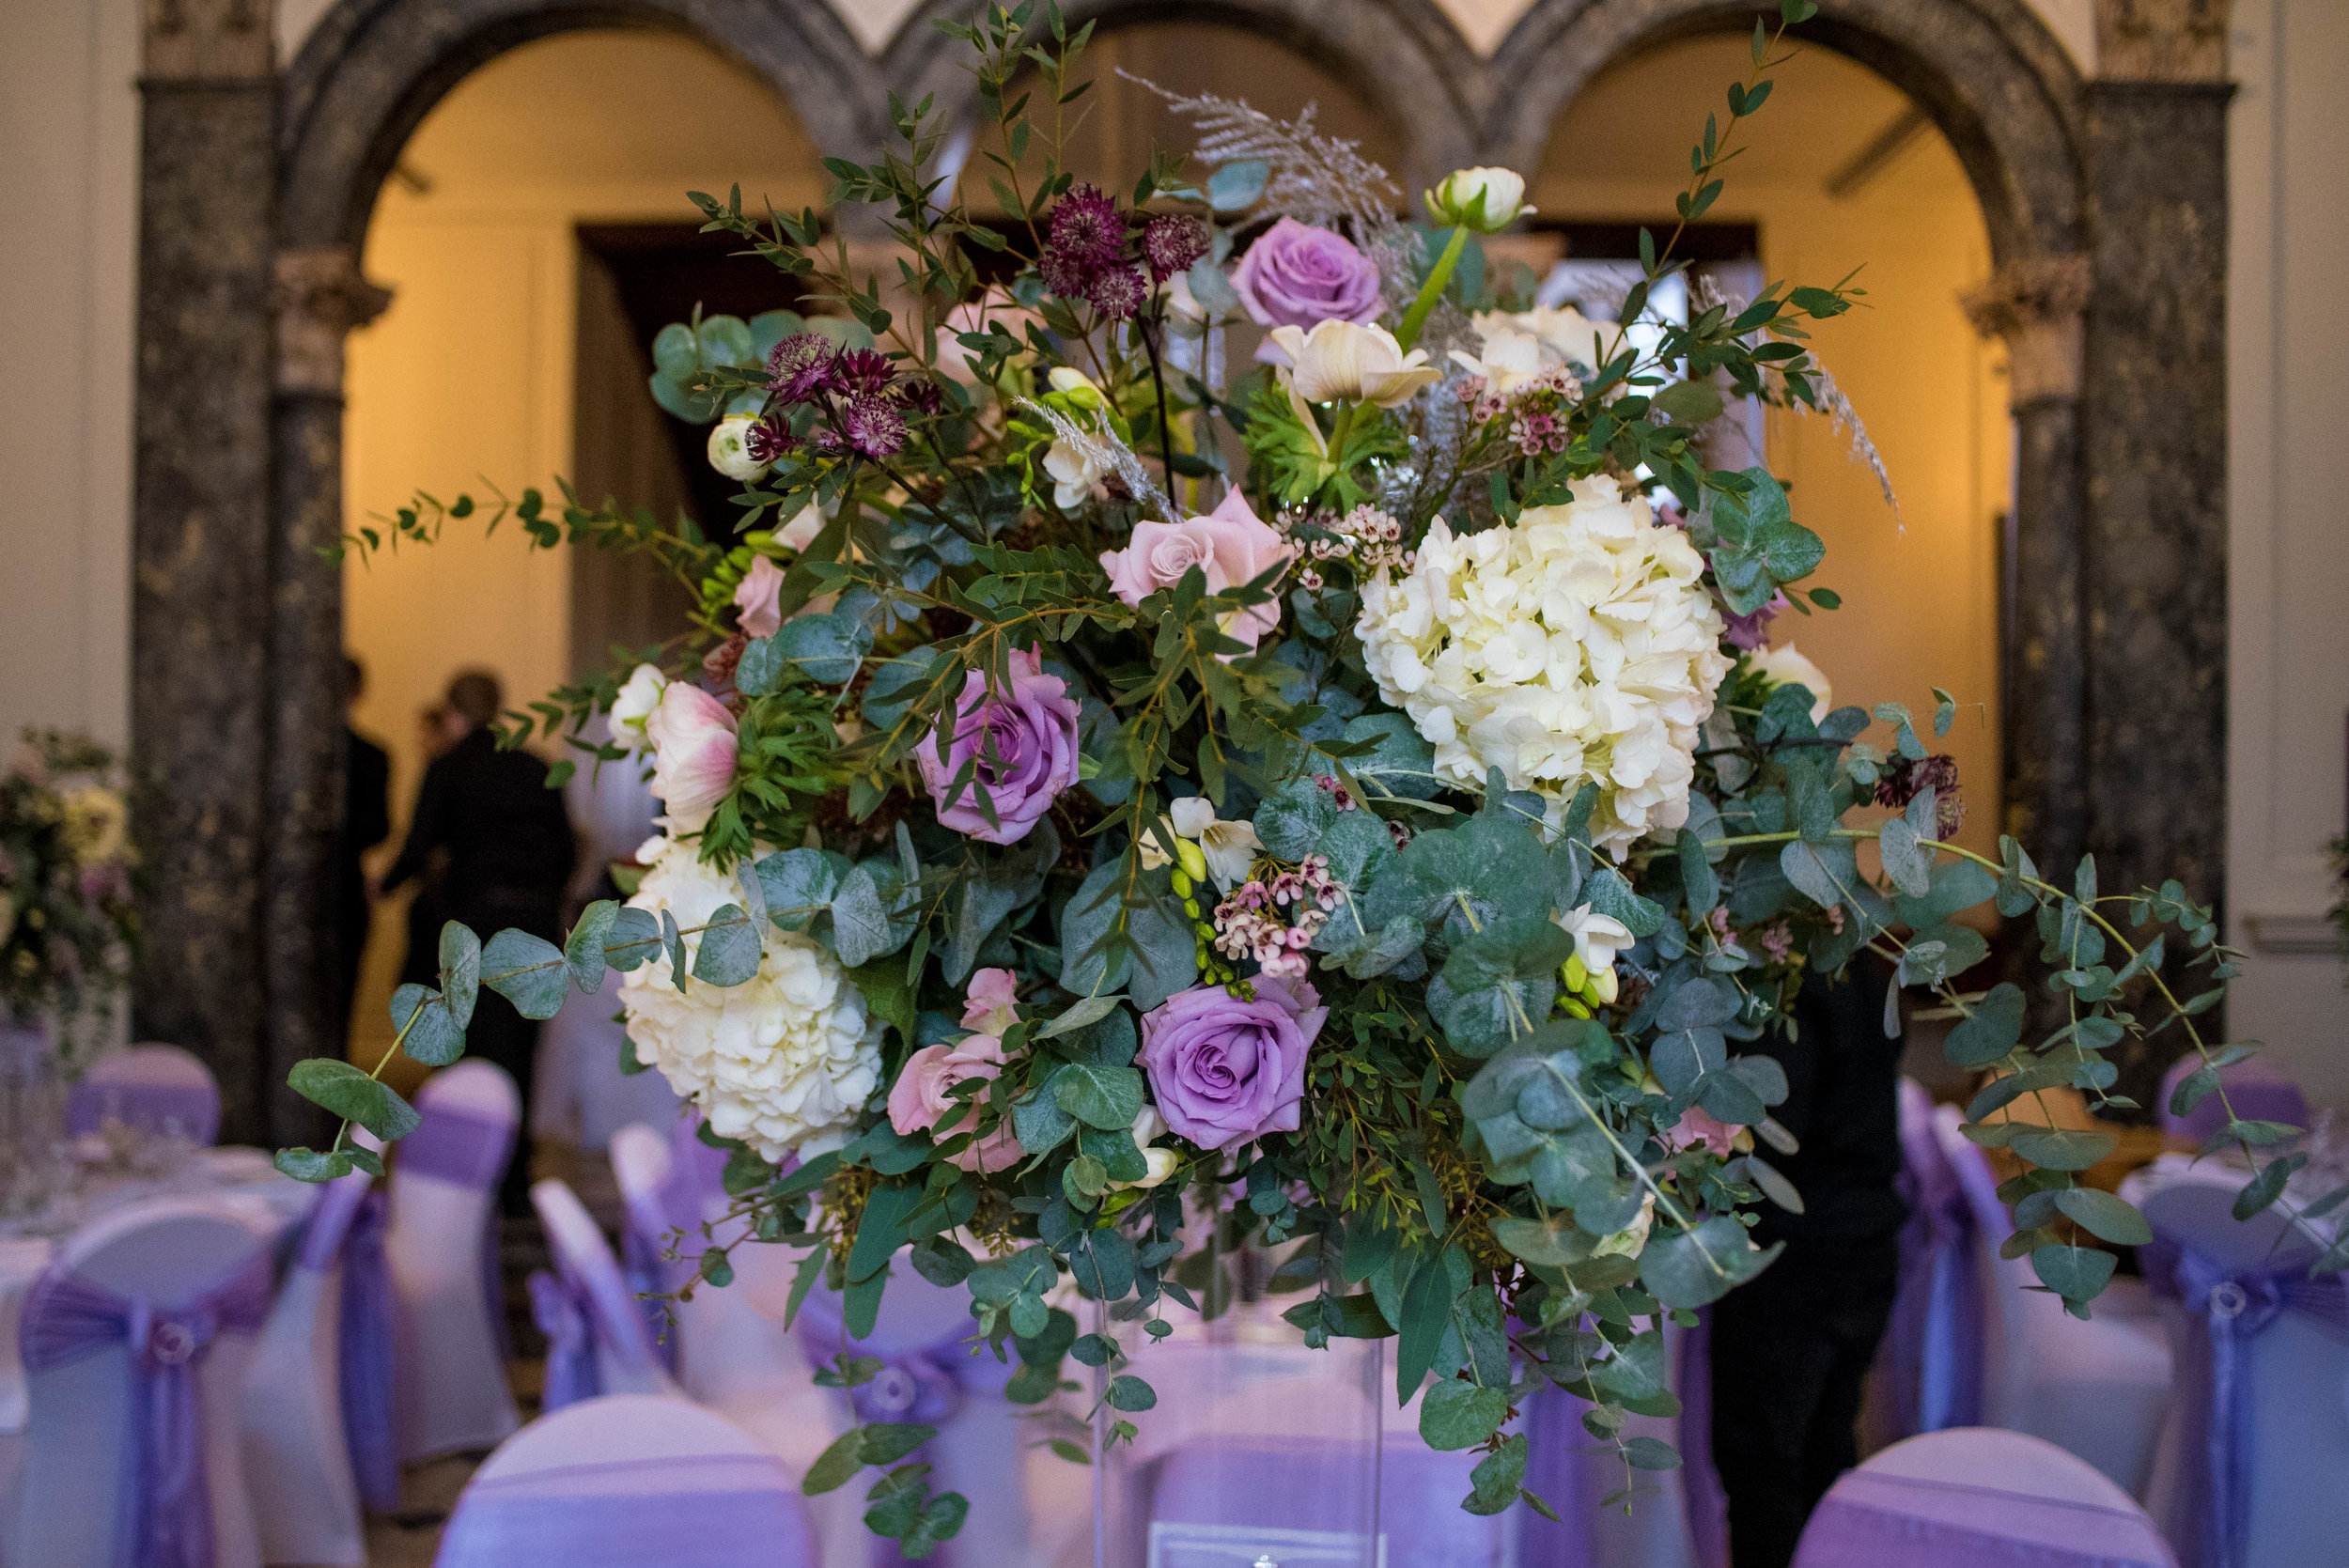 Tall centrepieces full of hydrangeas, roses, freesias and anemones